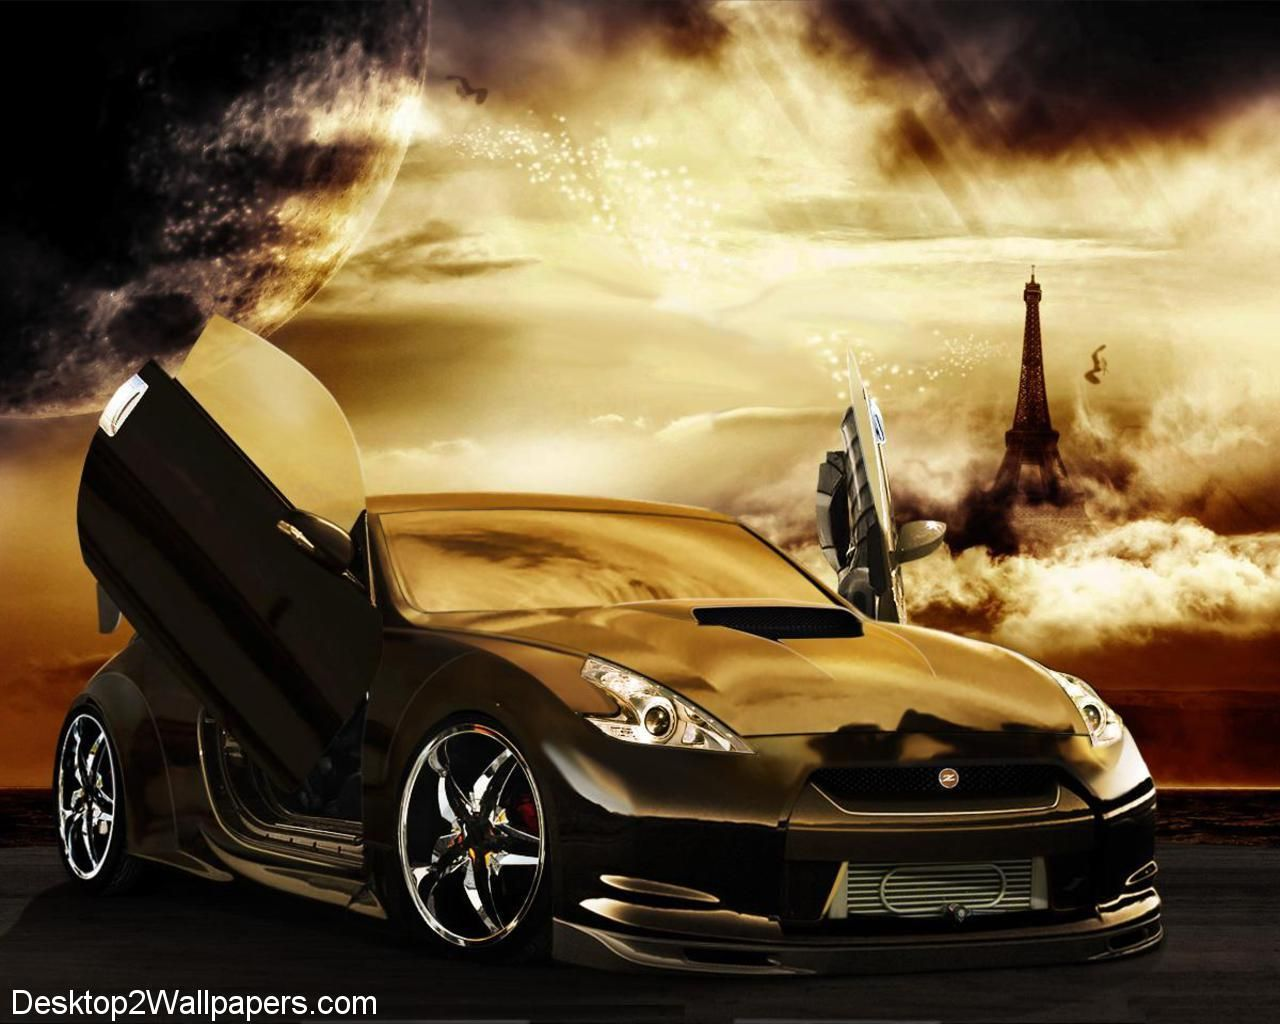 Nissan z wallpapers hd download wallpapers pinterest z nismo wallpapers wallpaper wallpapers wallpapers vanachro Choice Image